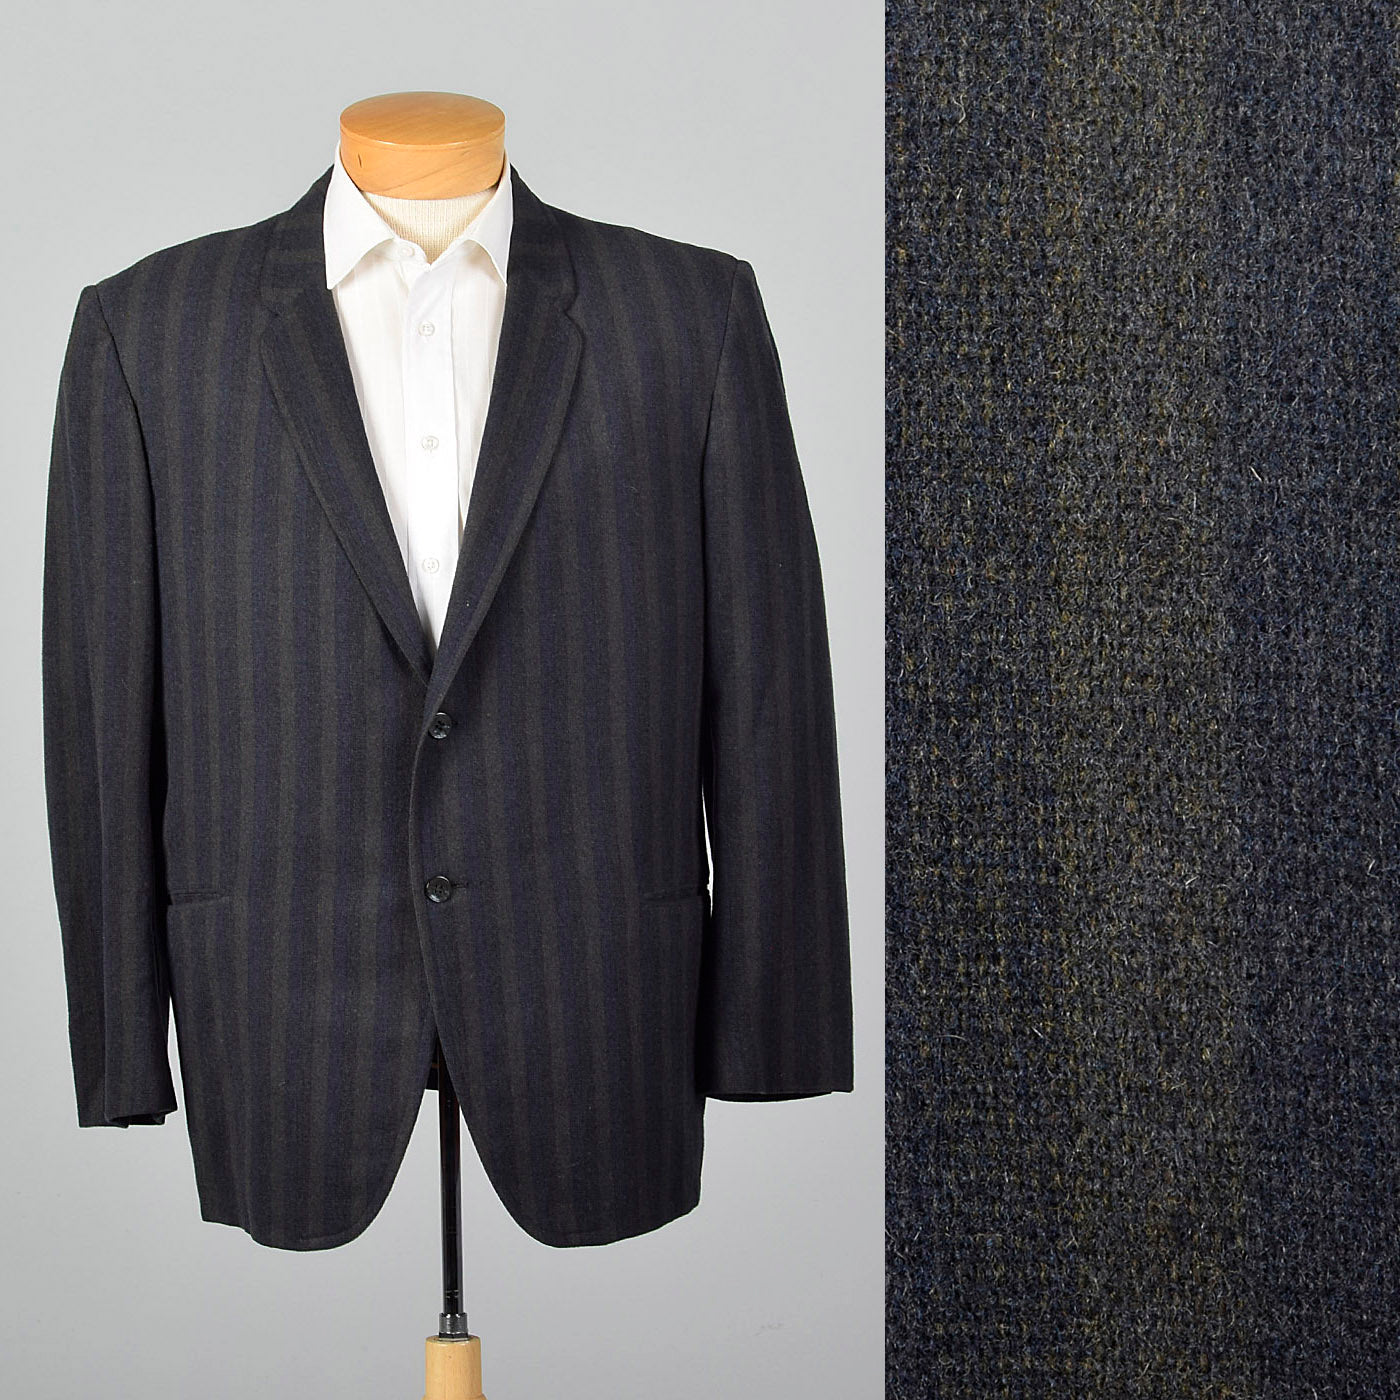 1950s Gray and Blue Wool Striped Jacket